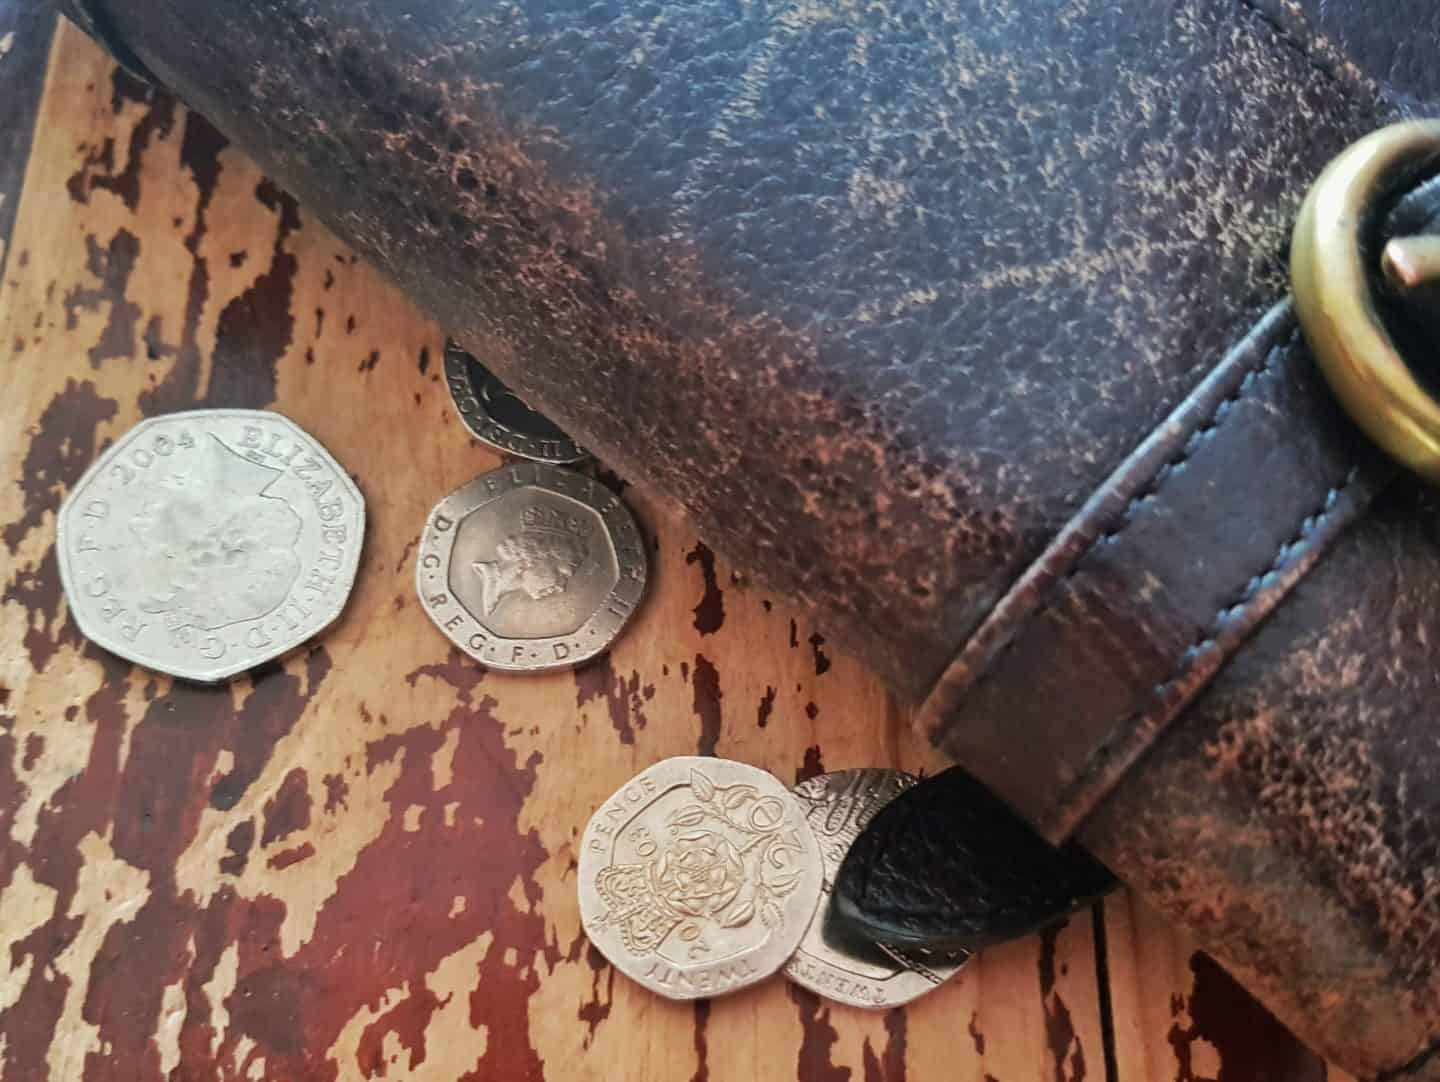 purse with money in the form of coins beside it